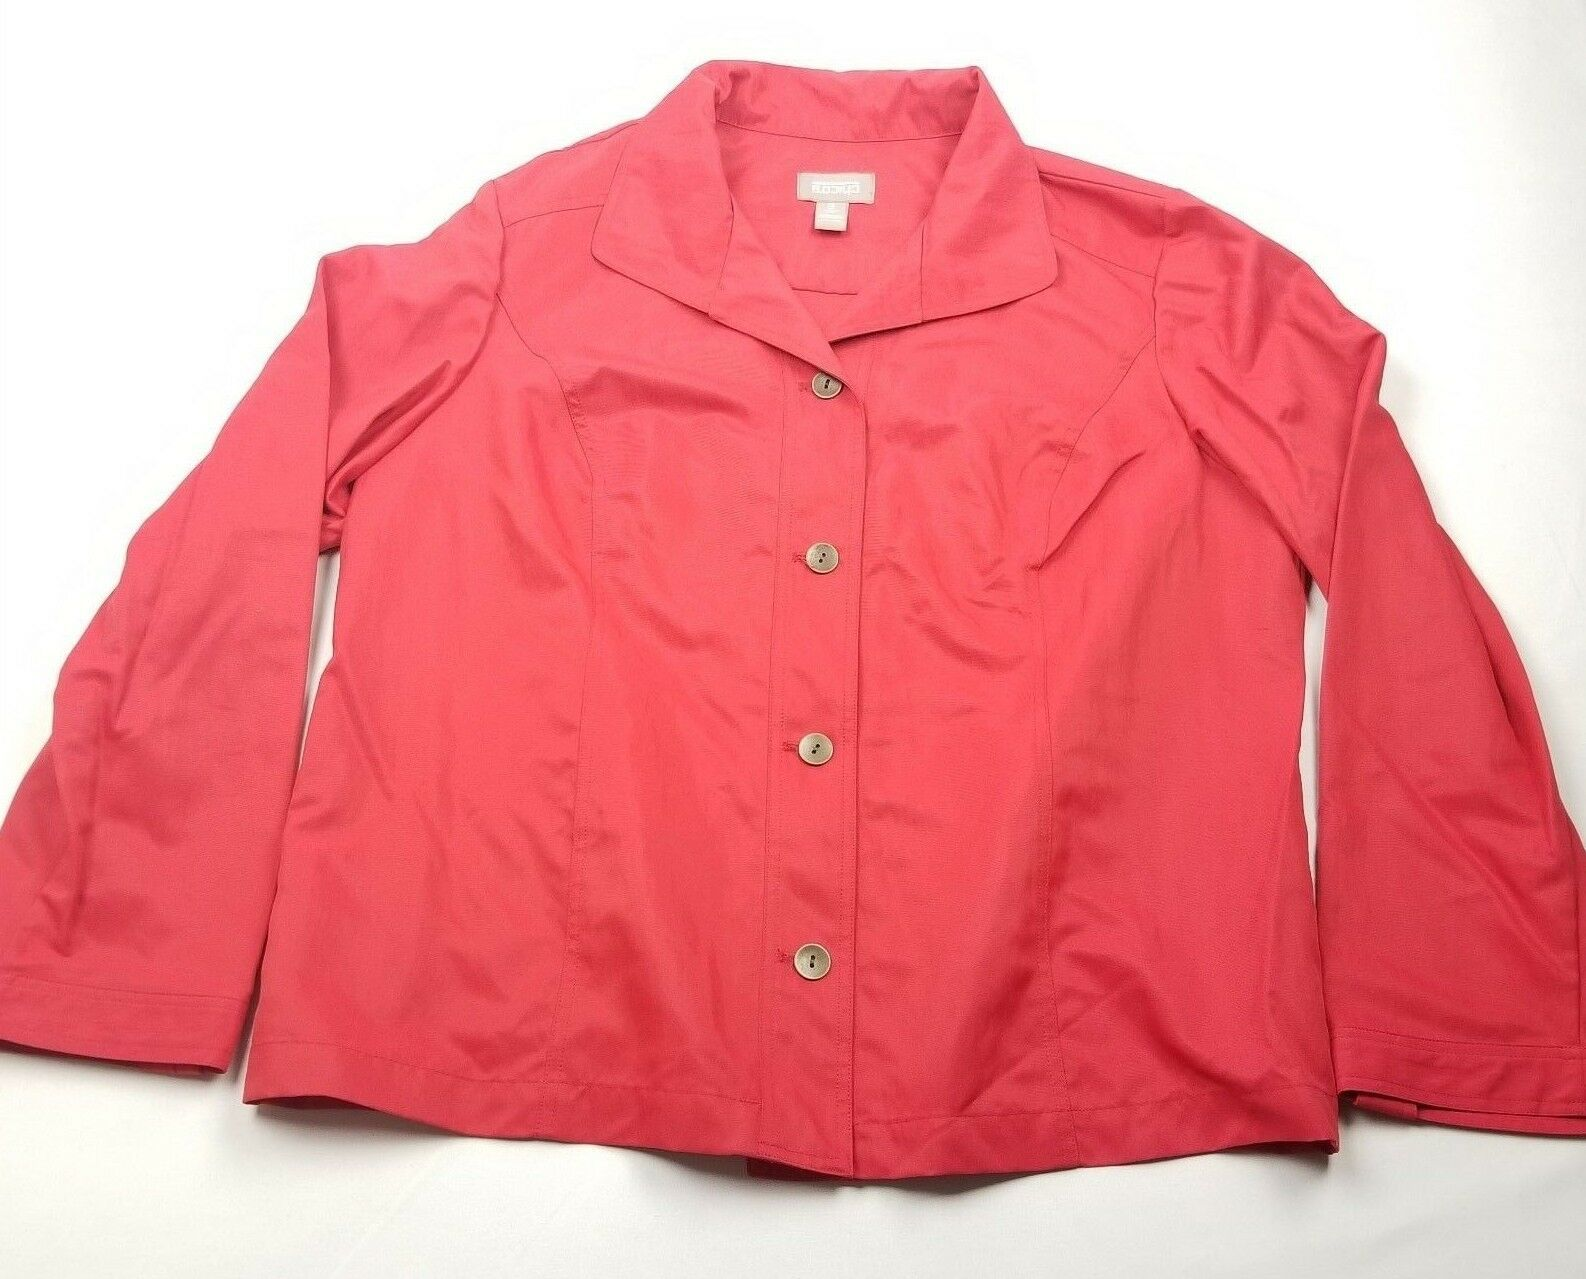 Primary image for Chico's Womens Blazer Size 3 Button Down Casual XL/16